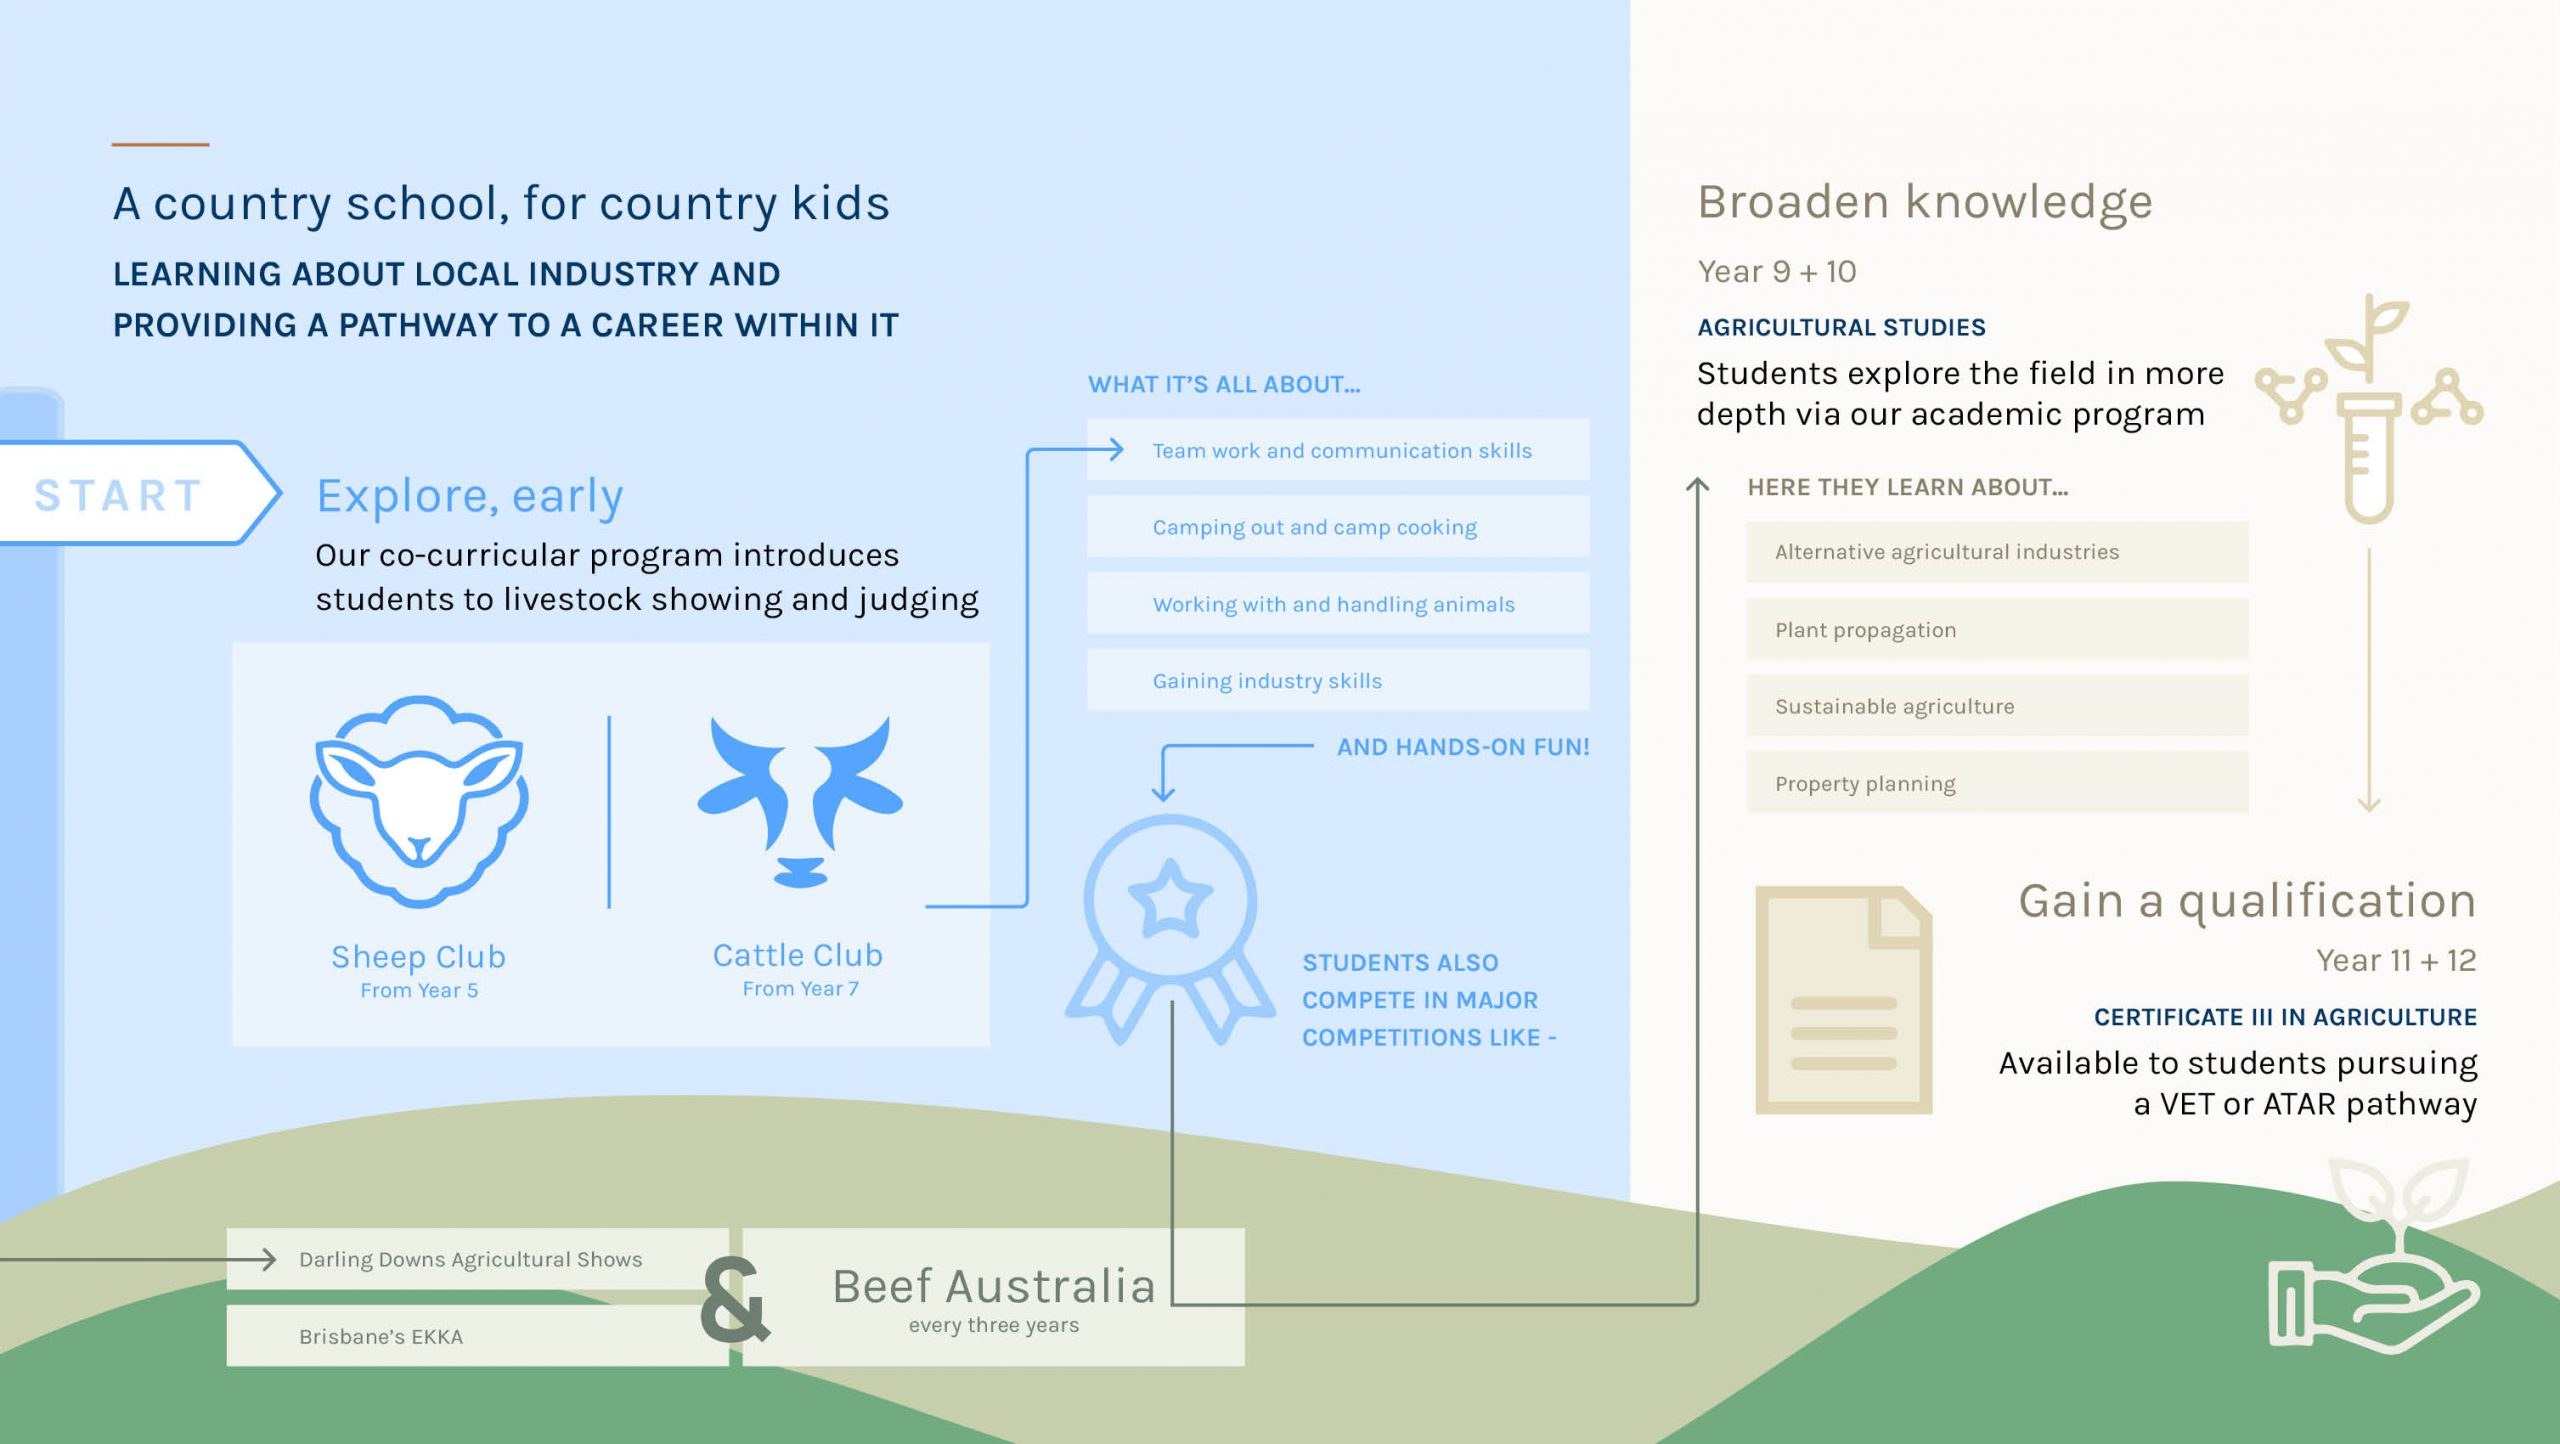 https://scotspgc.com.au/wp-content/uploads/2020/06/Learn-agriculture-at-school-scaled.jpg